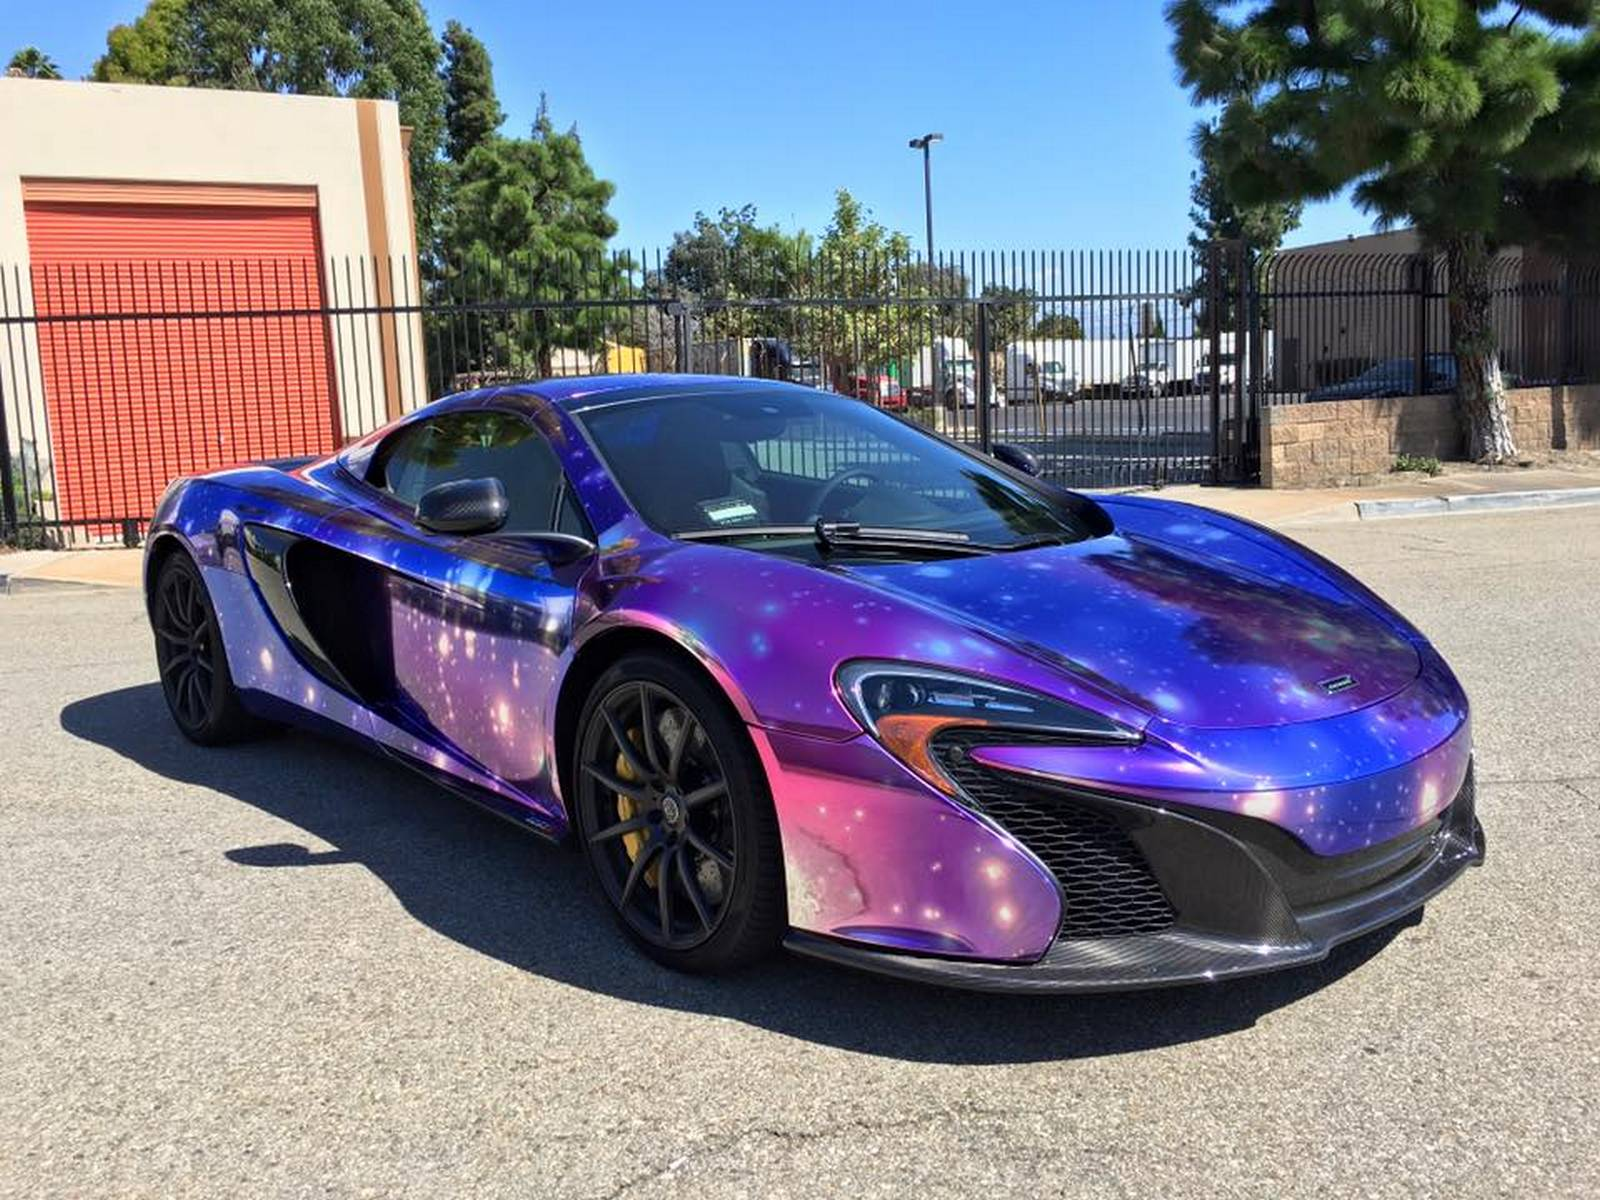 An exclusive 'Galaxy Chrome' wrap for a McLaren 650S Spider